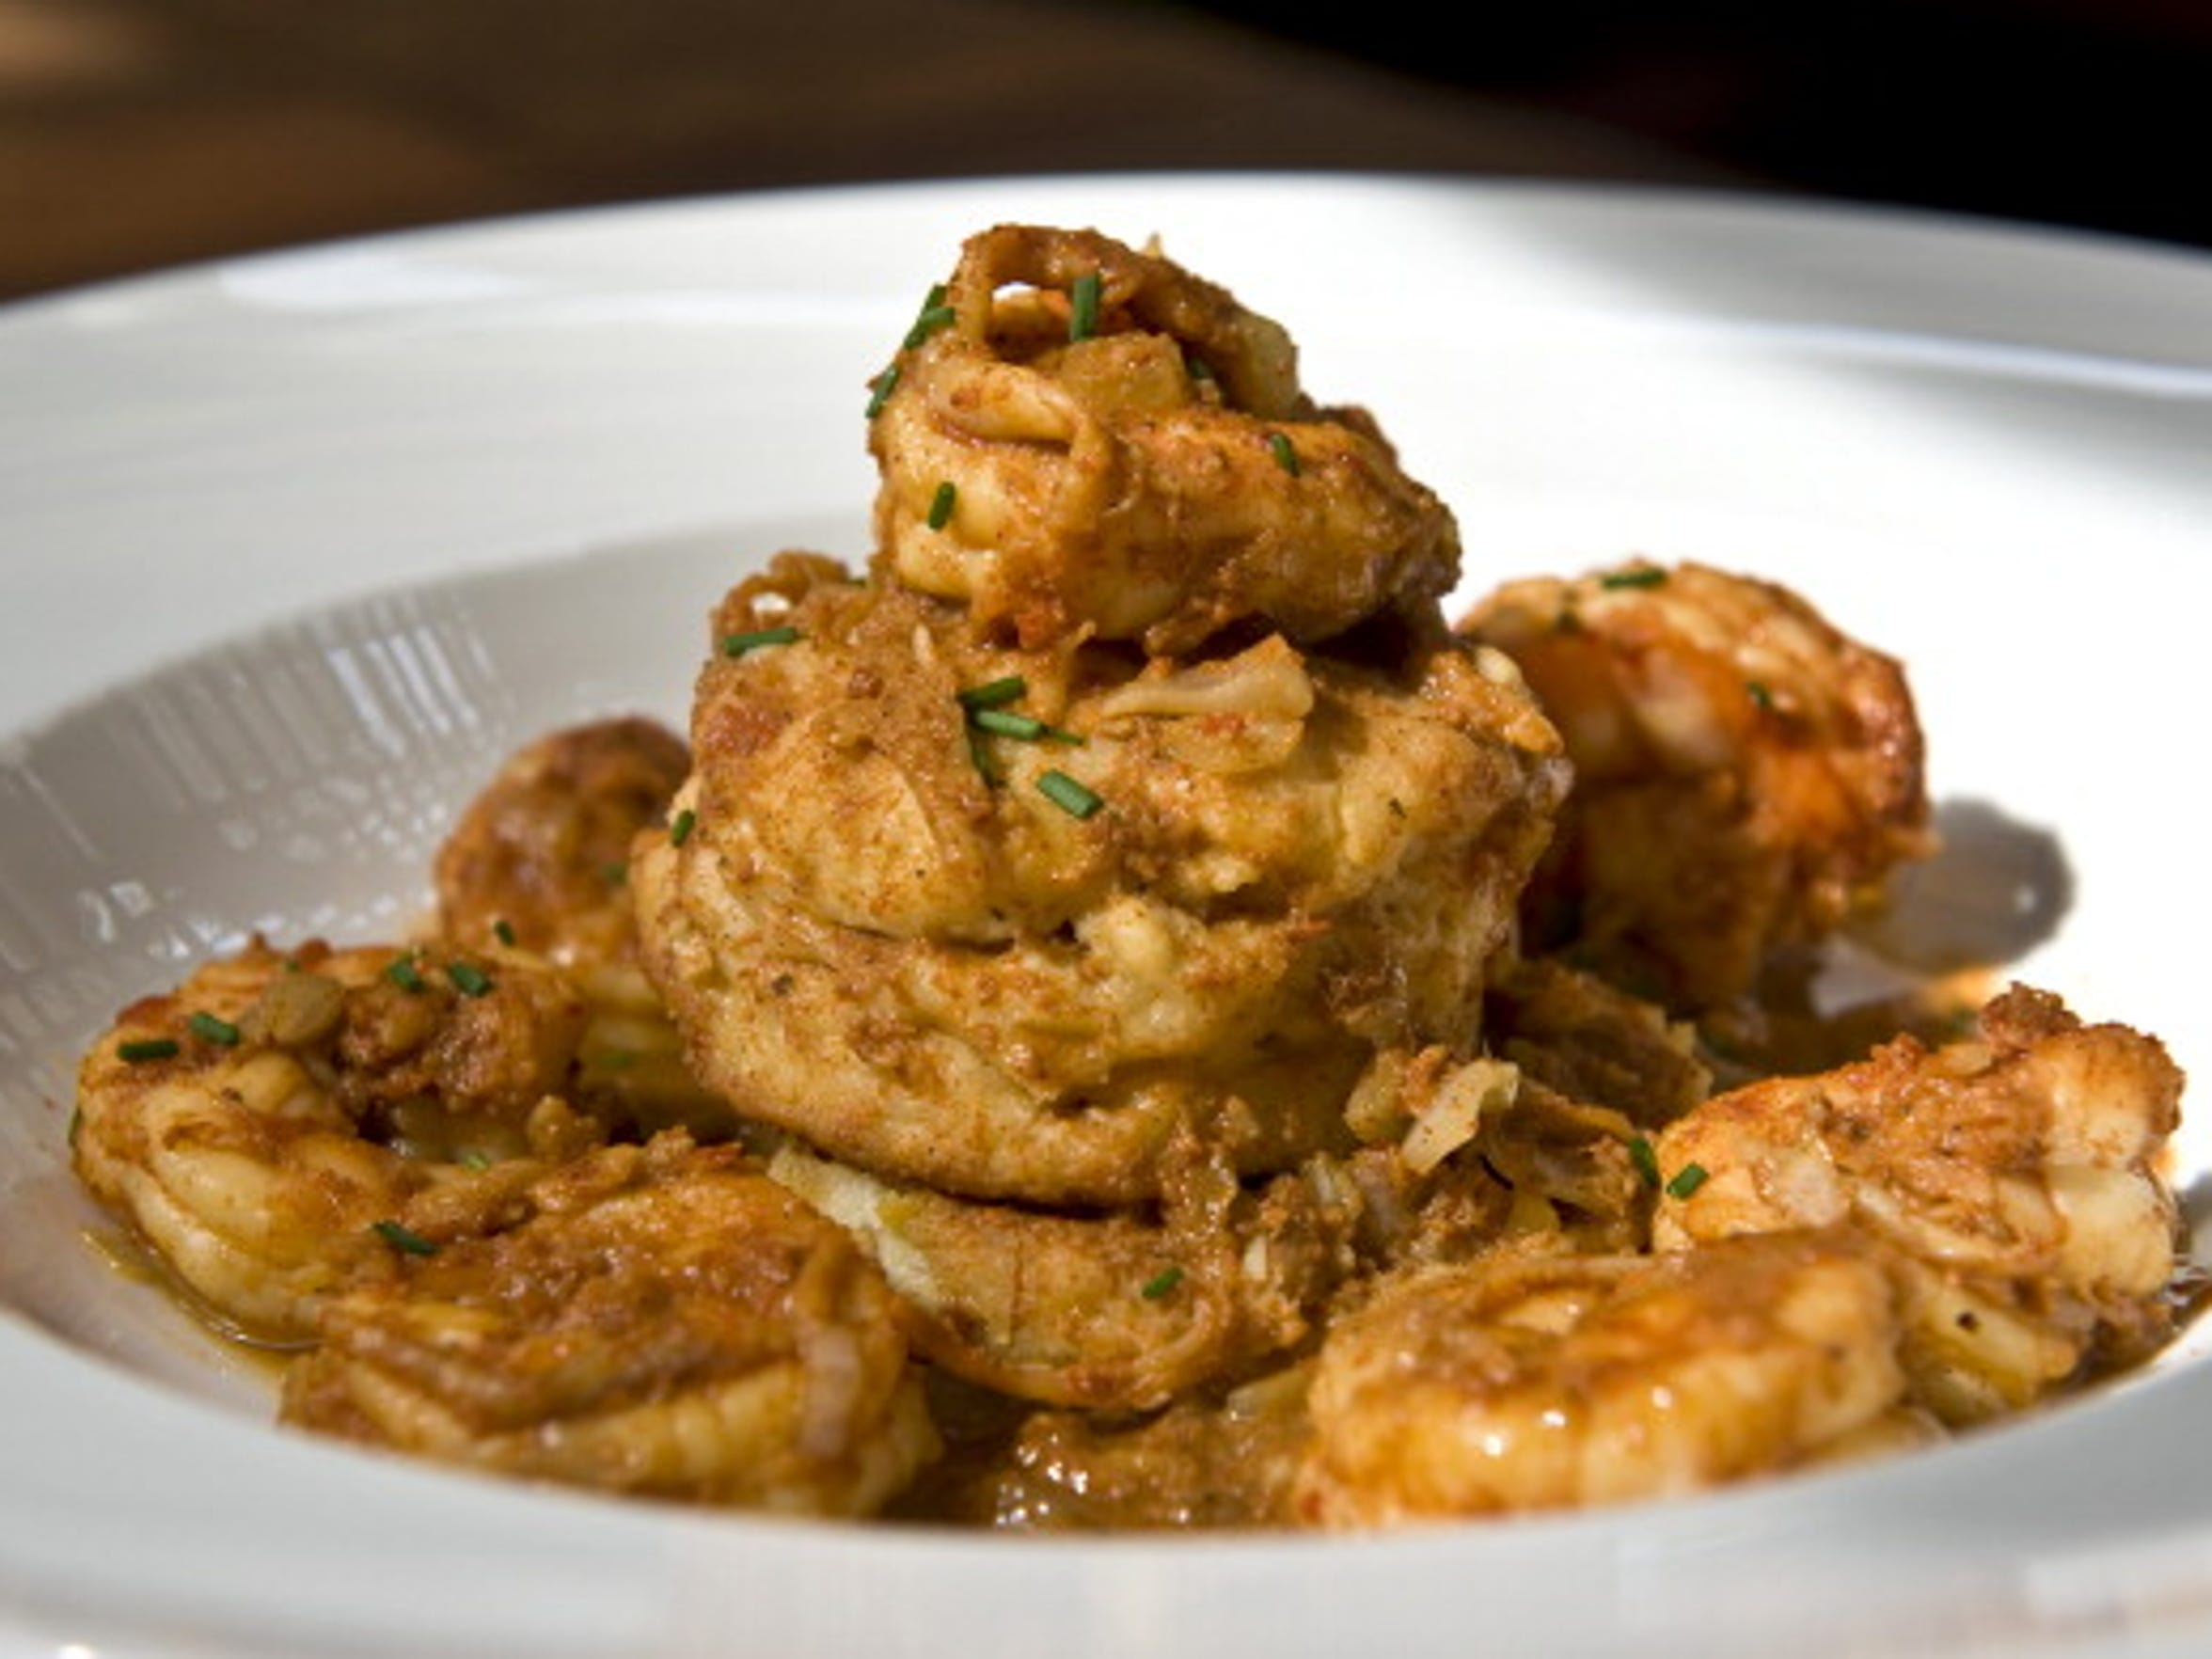 New Orleans-Style Barbecued Shrimp, made in the oven, easily serves a crowd. Pass around plenty of bread to soak up the sauce.